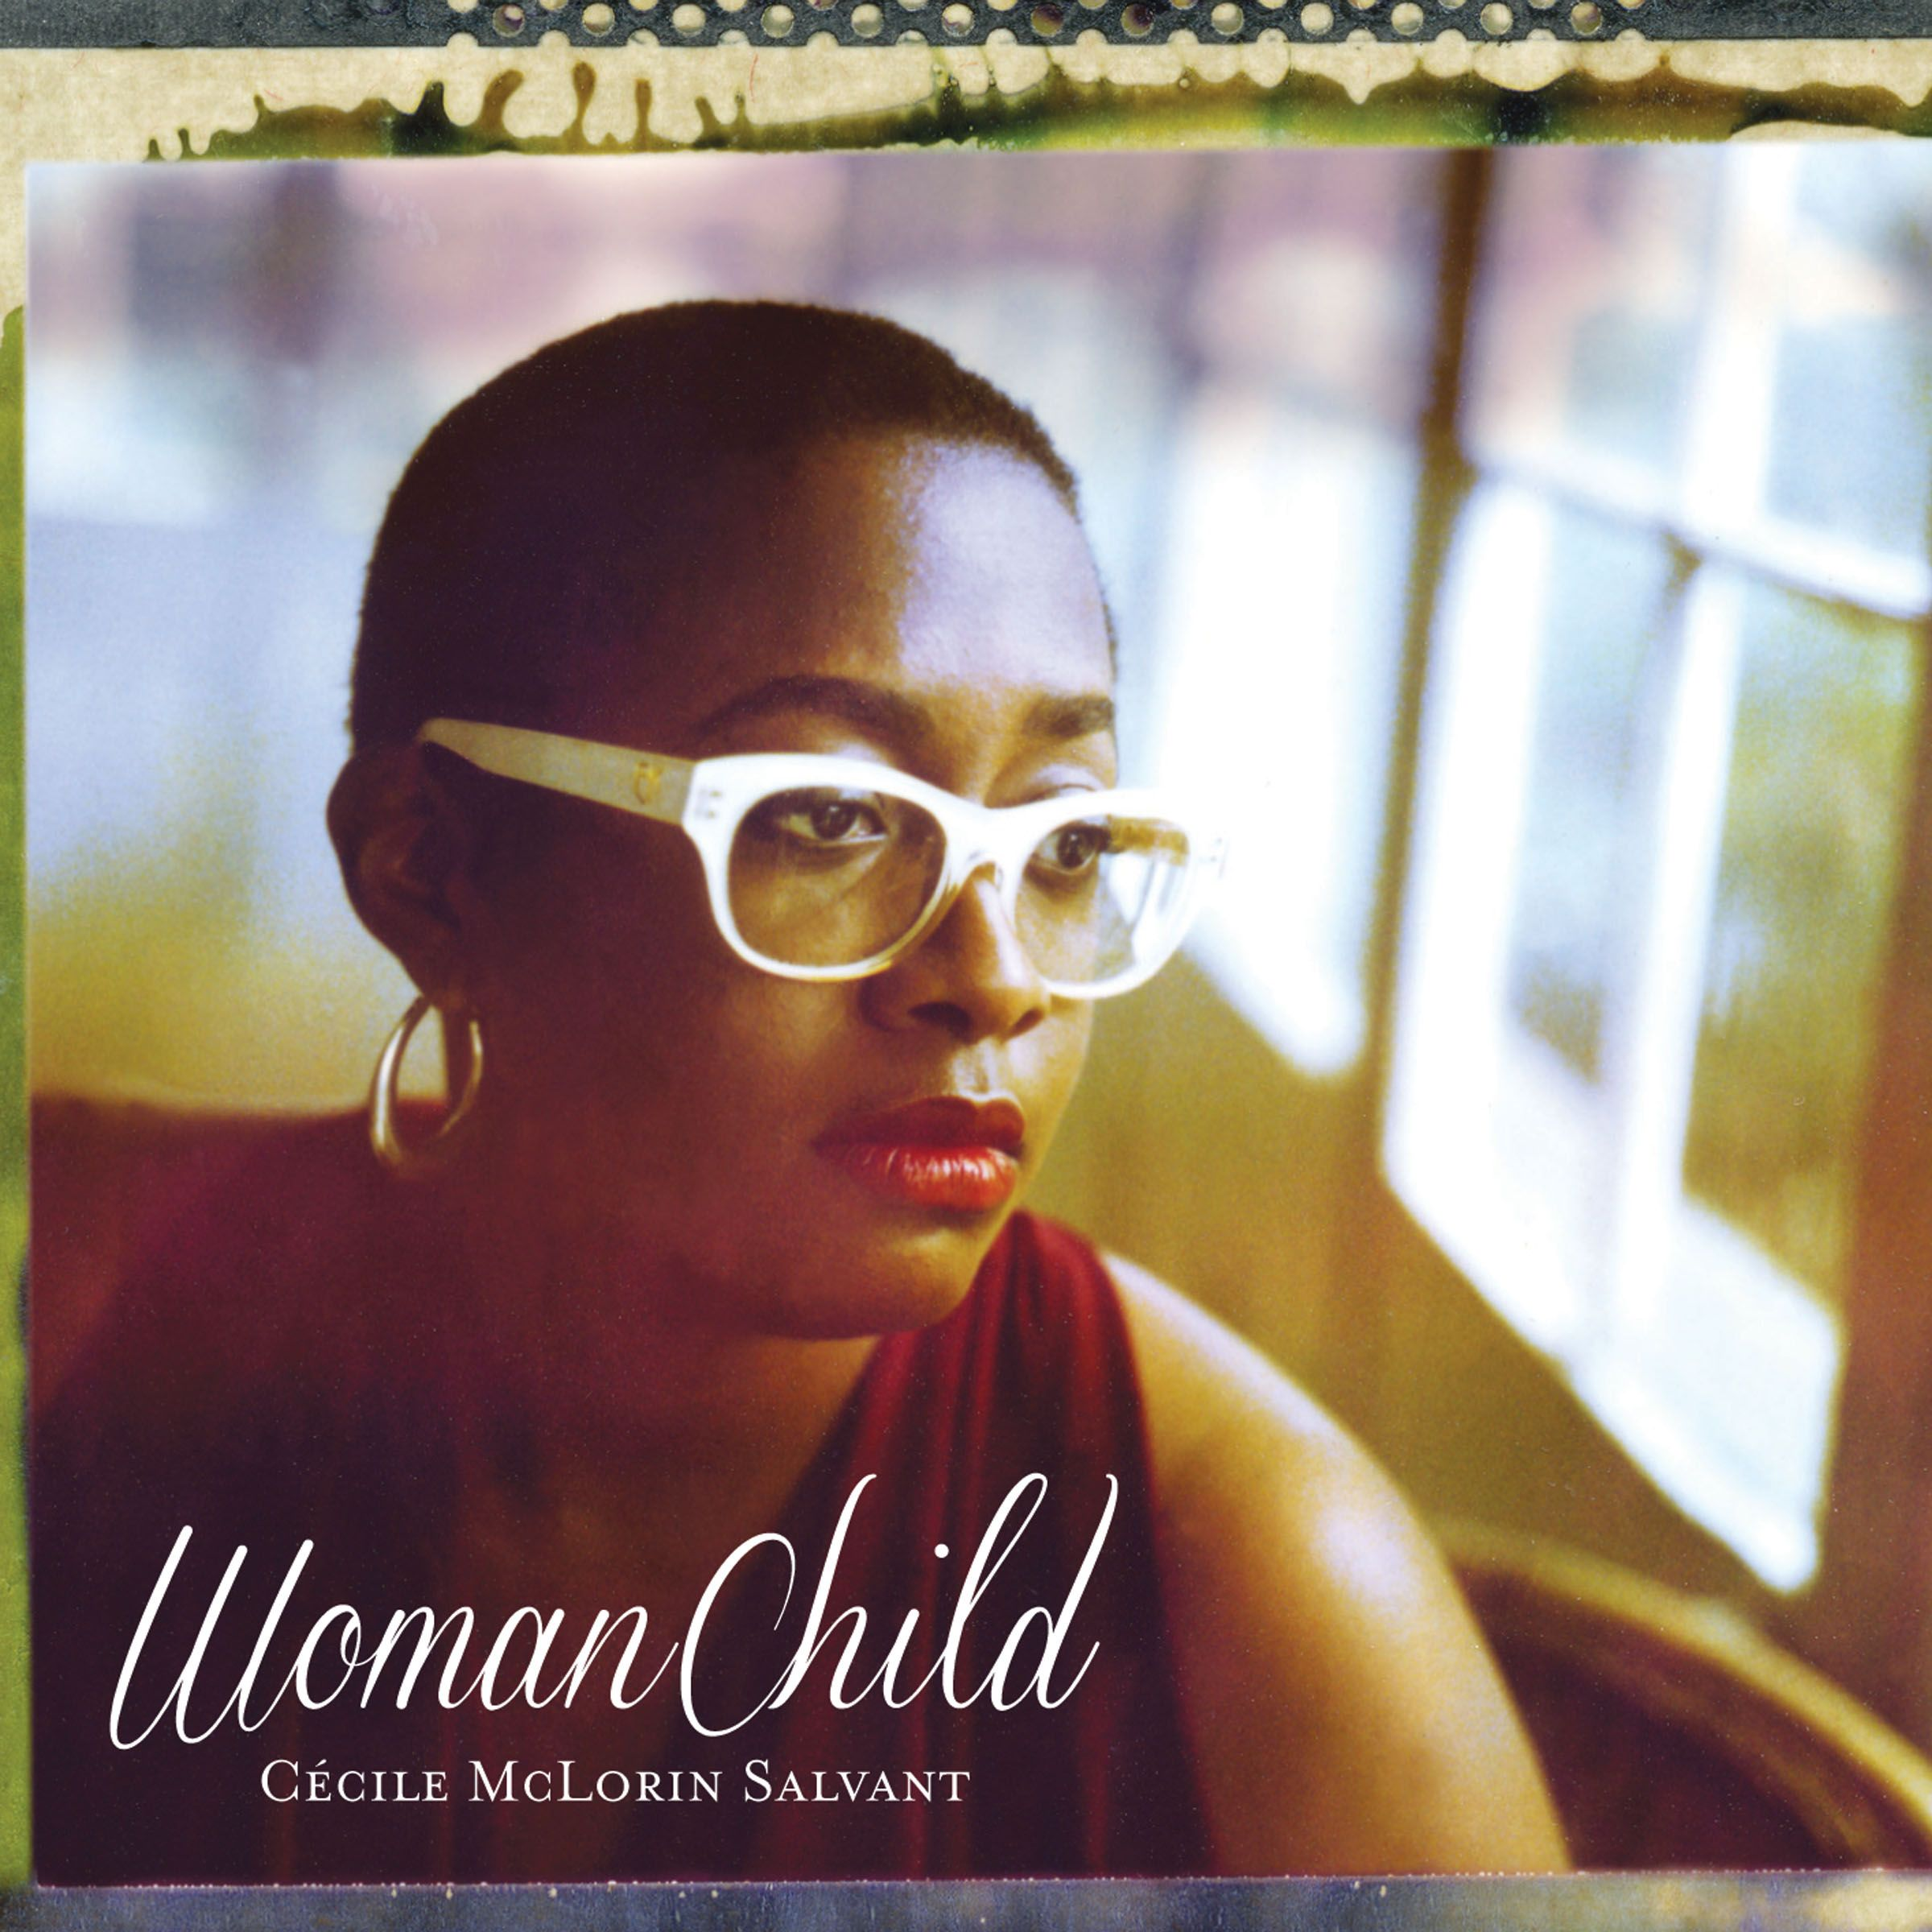 Cover Album - Woman Child